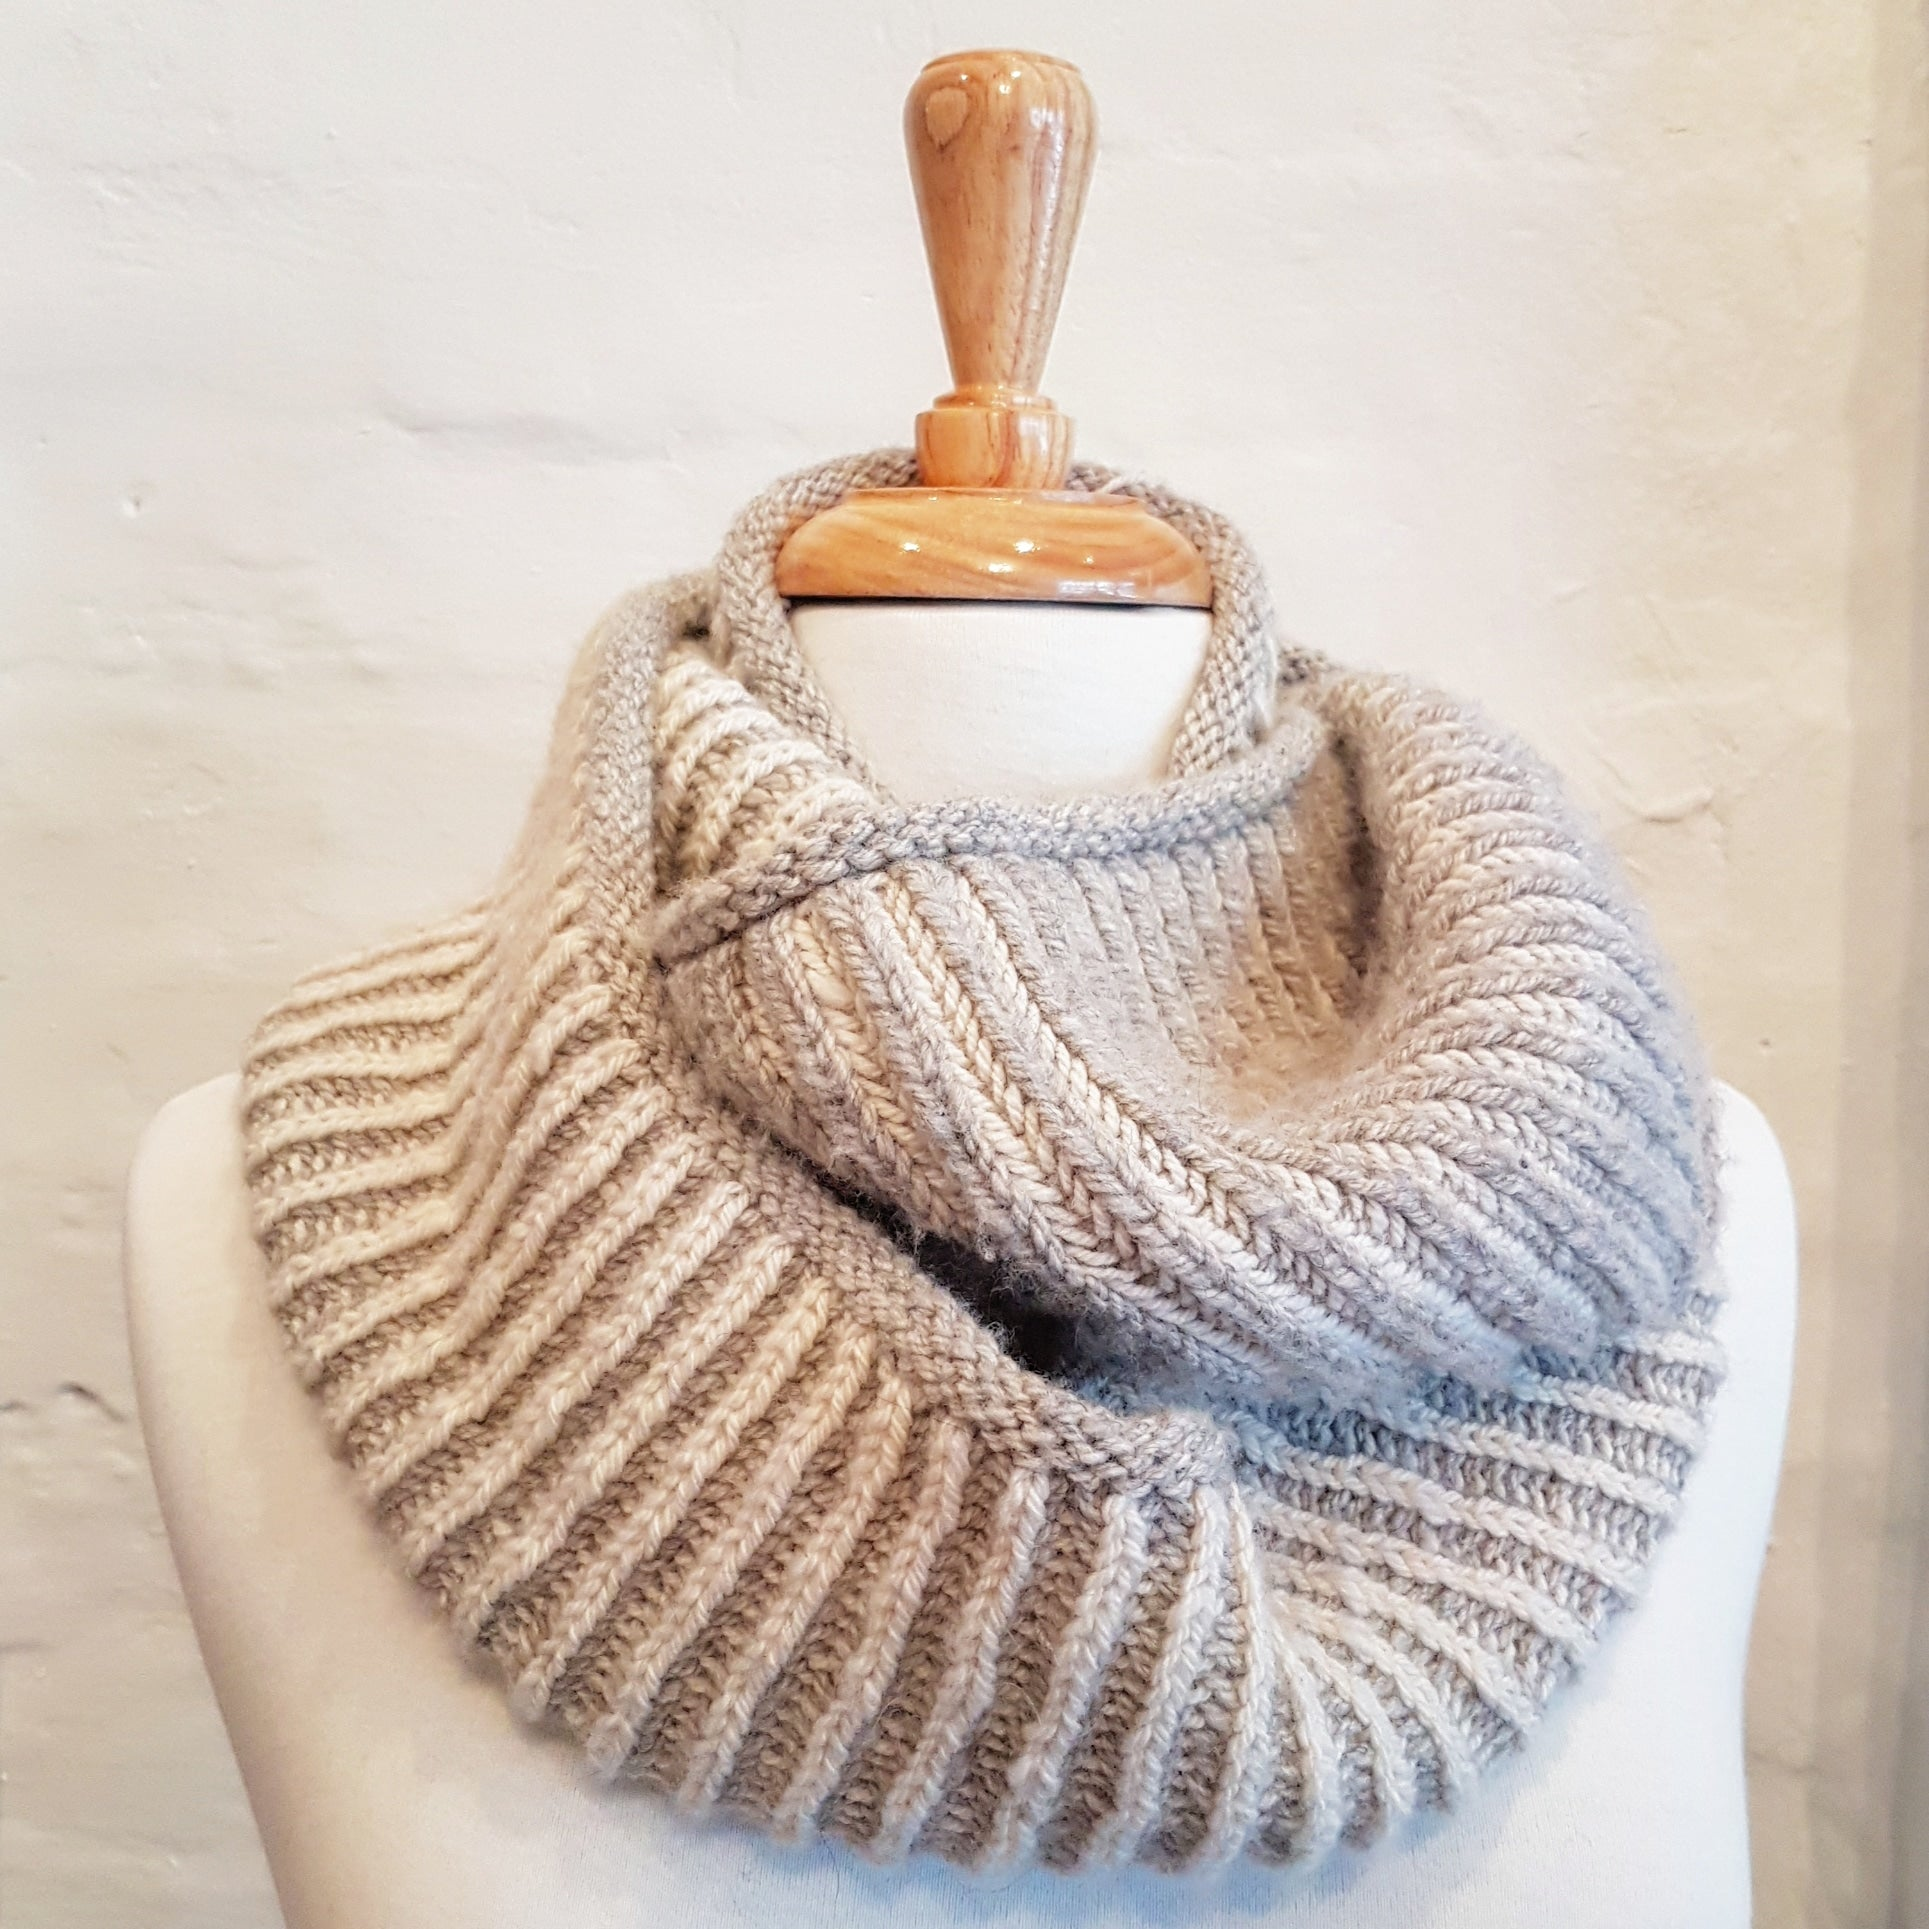 Basic Brioche - March 28